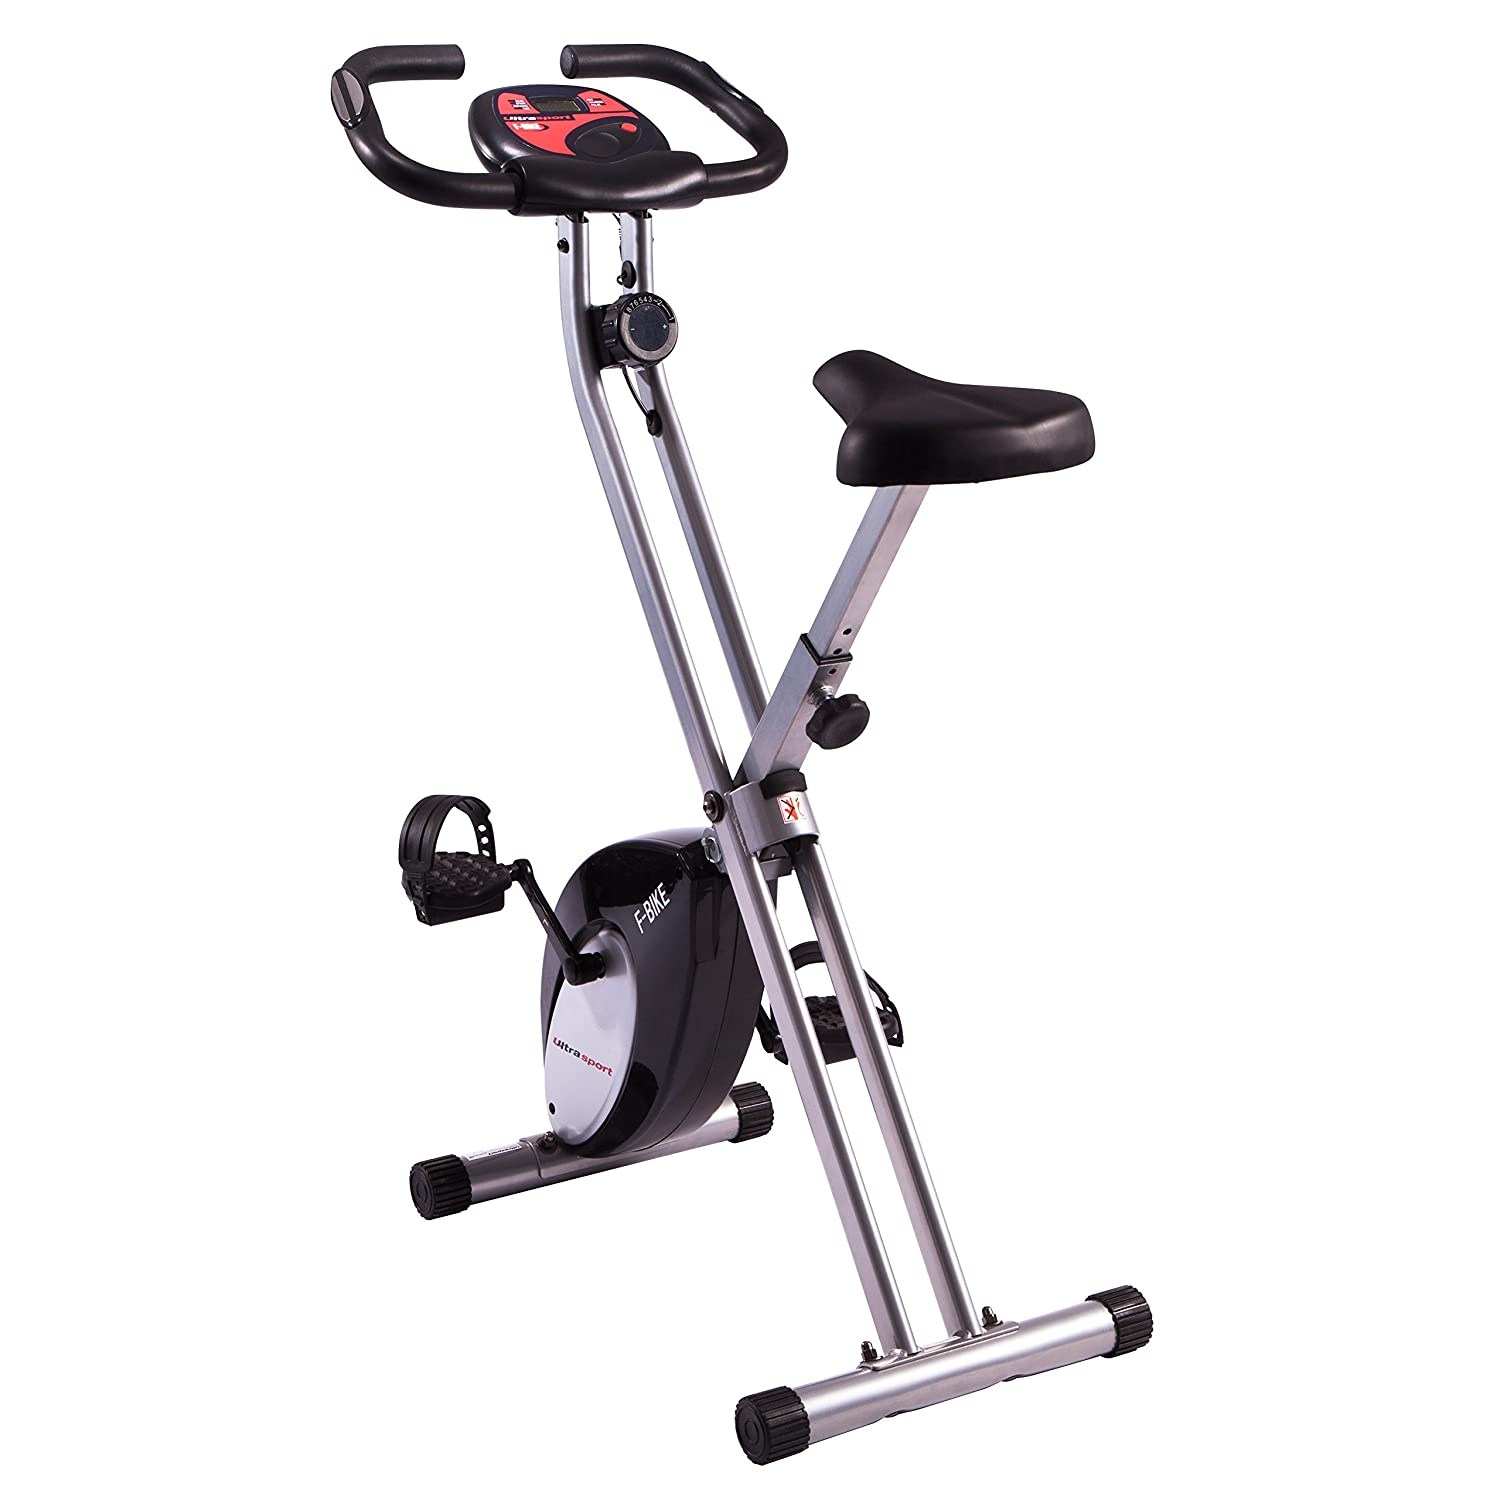 Ultrasport F Bike bicicleta estatica plegable